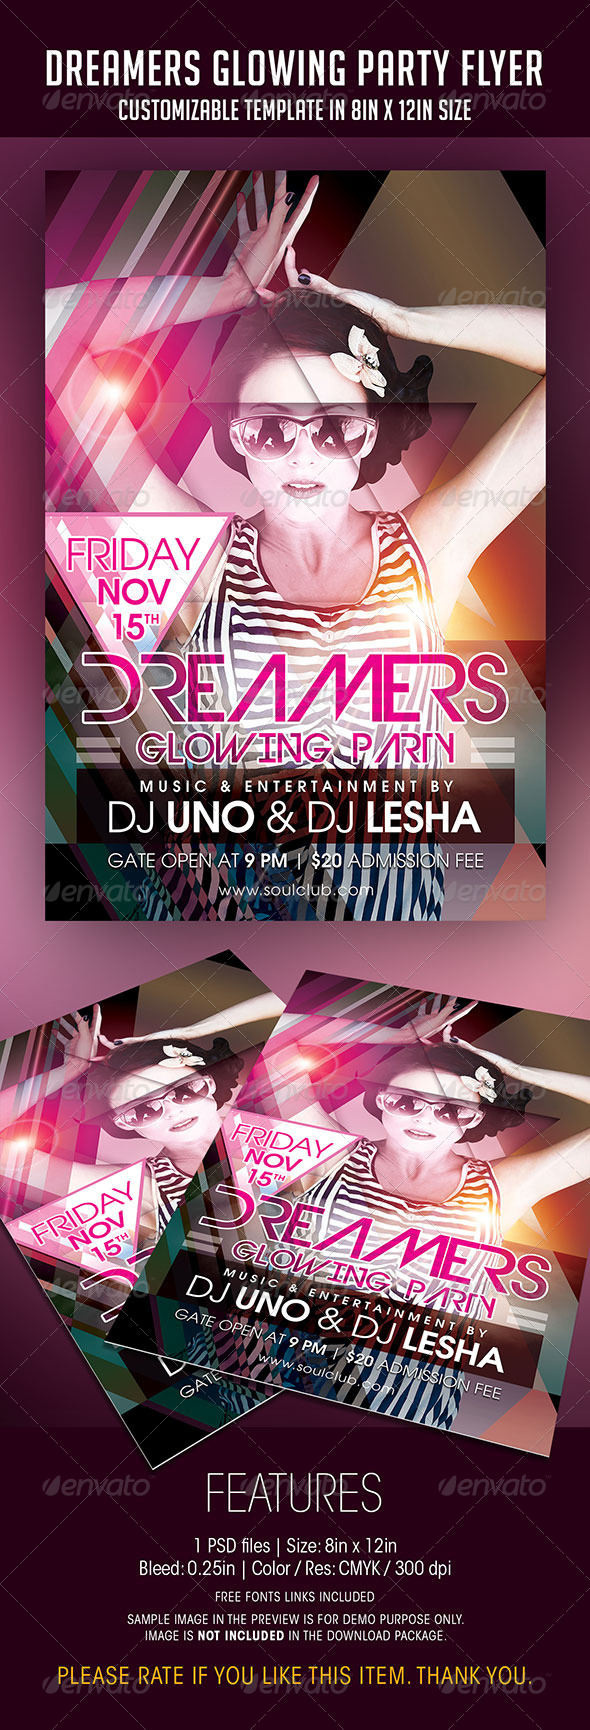 Dreamers Glowing Party Flyer - Clubs & Parties Events